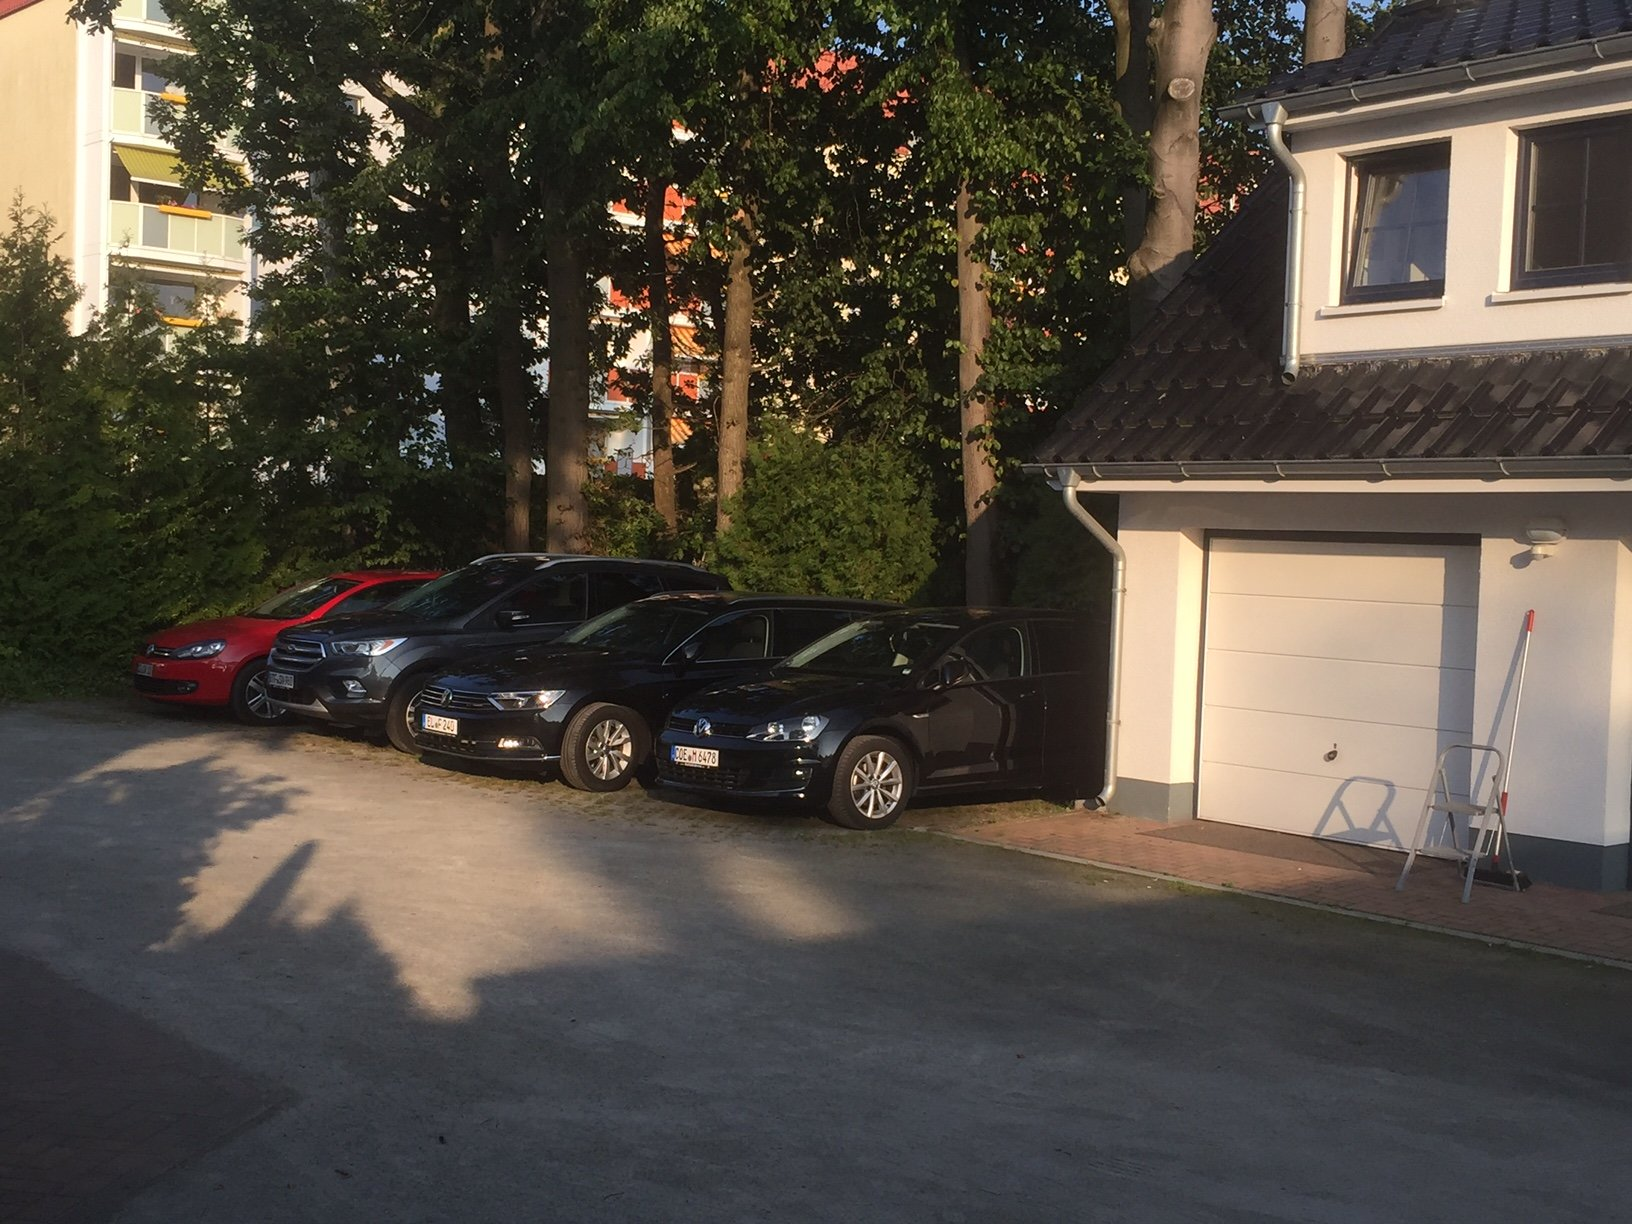 5 Parkplatz, Abstellraum linke Garage